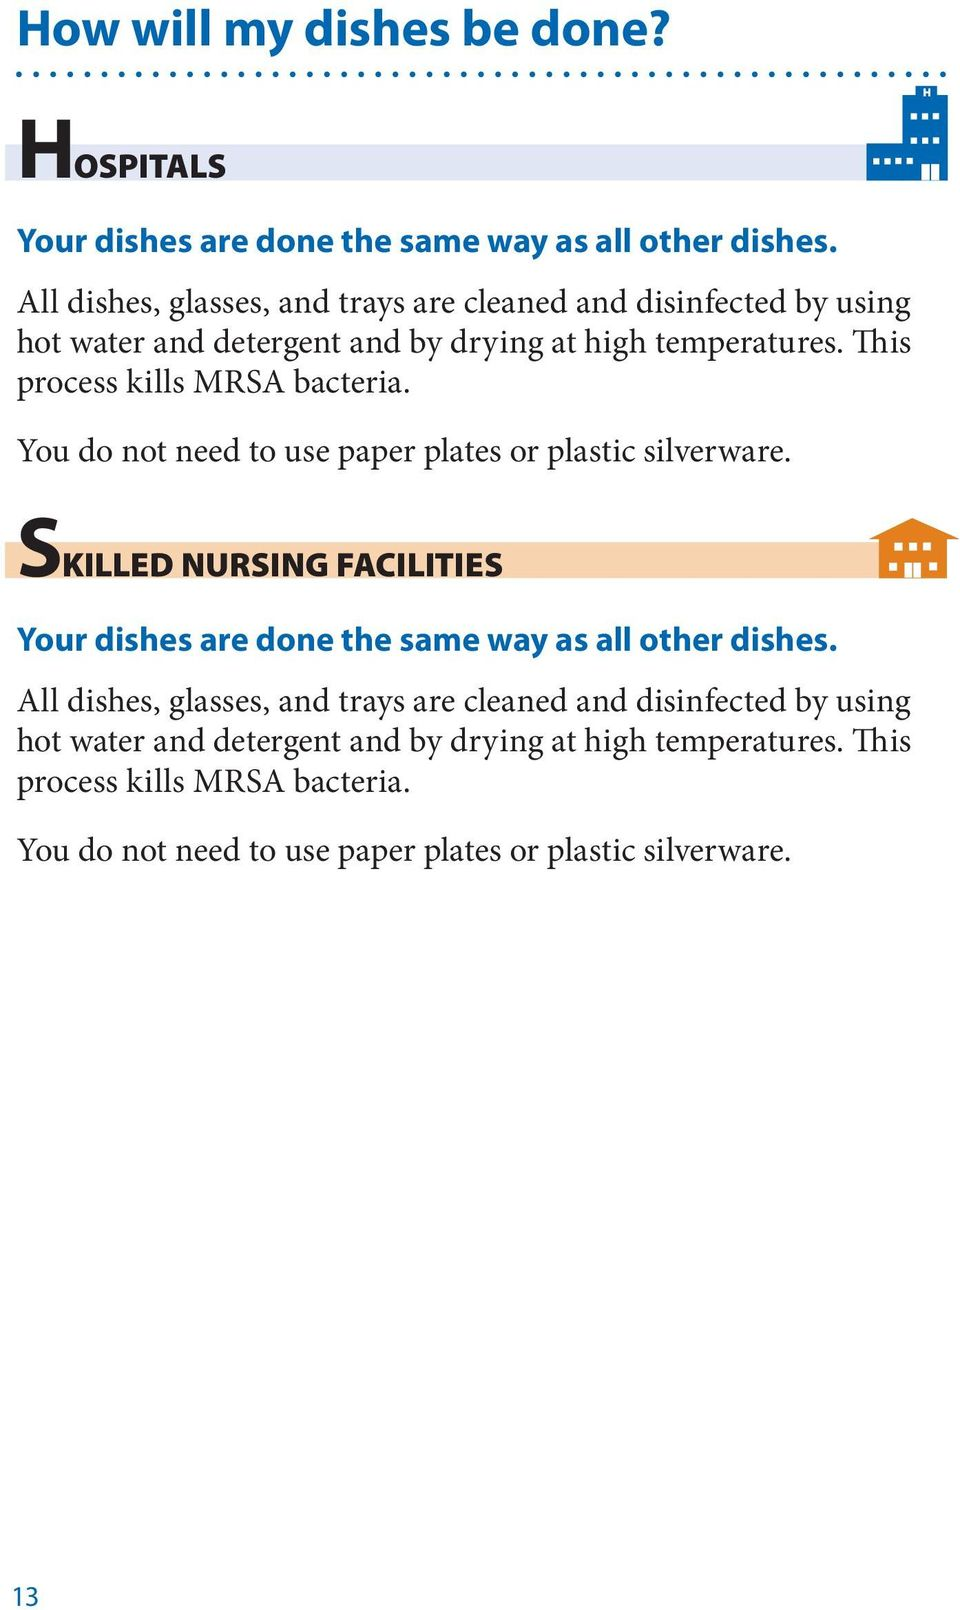 This process kills MRSA bacteria. You do not need to use paper plates or plastic silverware.